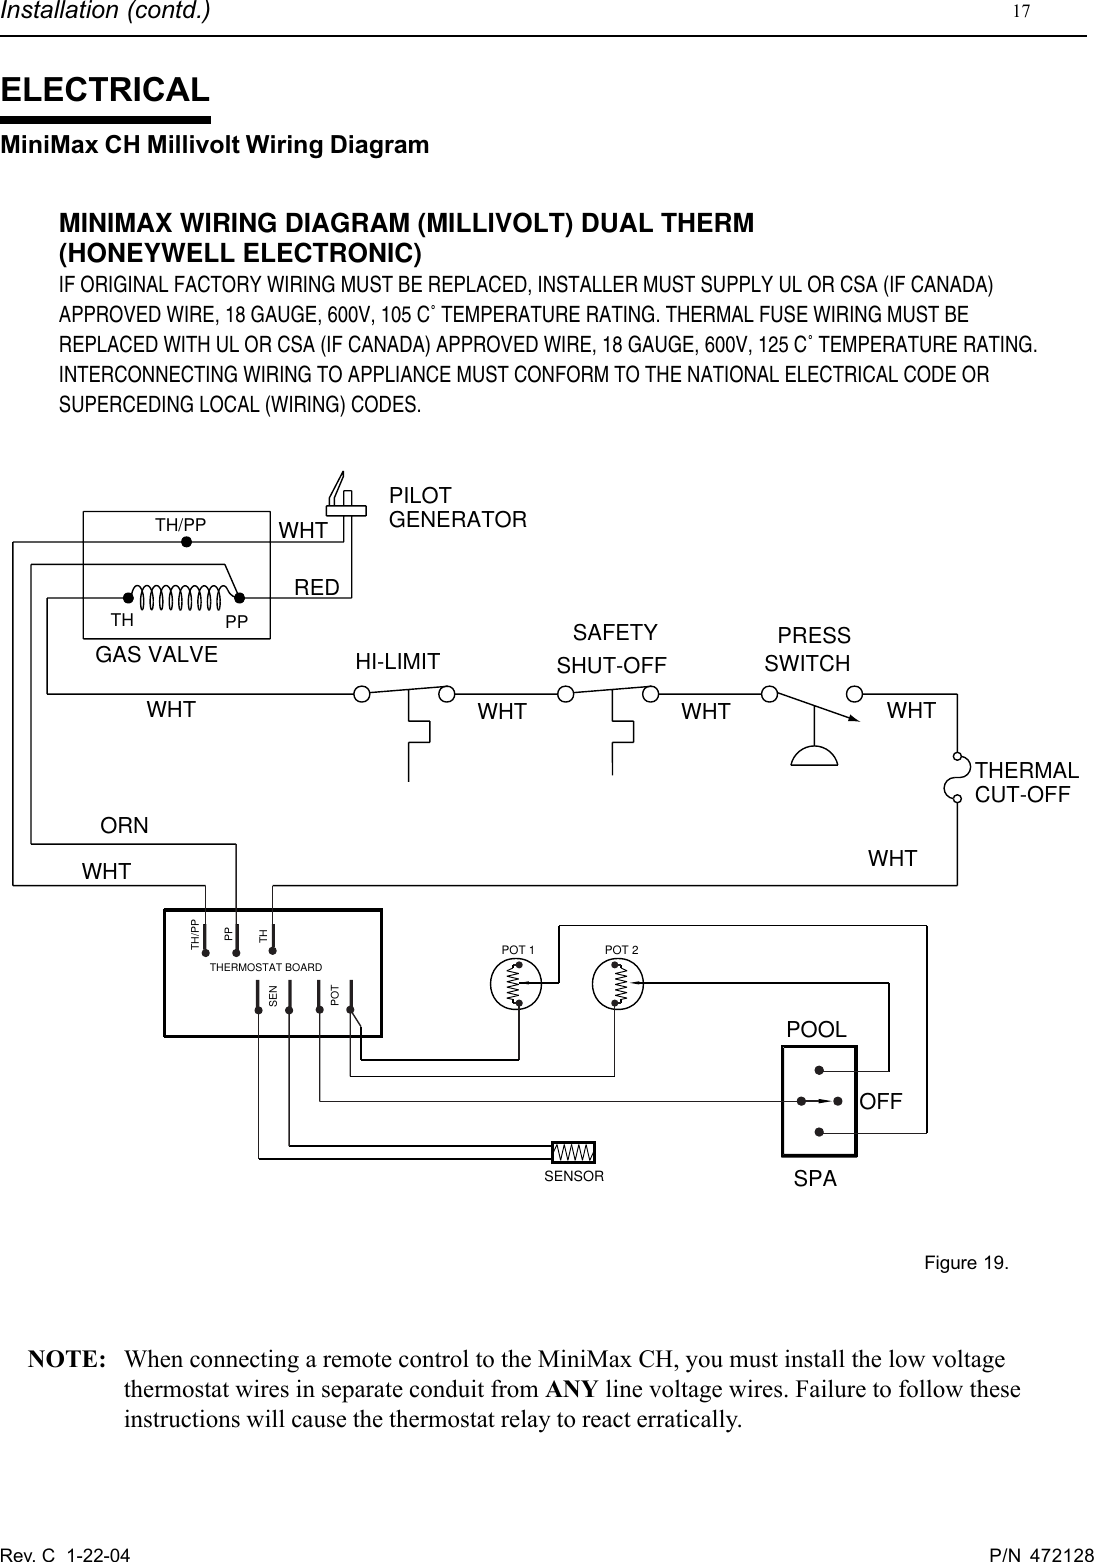 Millivolt Gas Valve Wiring Diagram On Natural Gas Valve Diagram